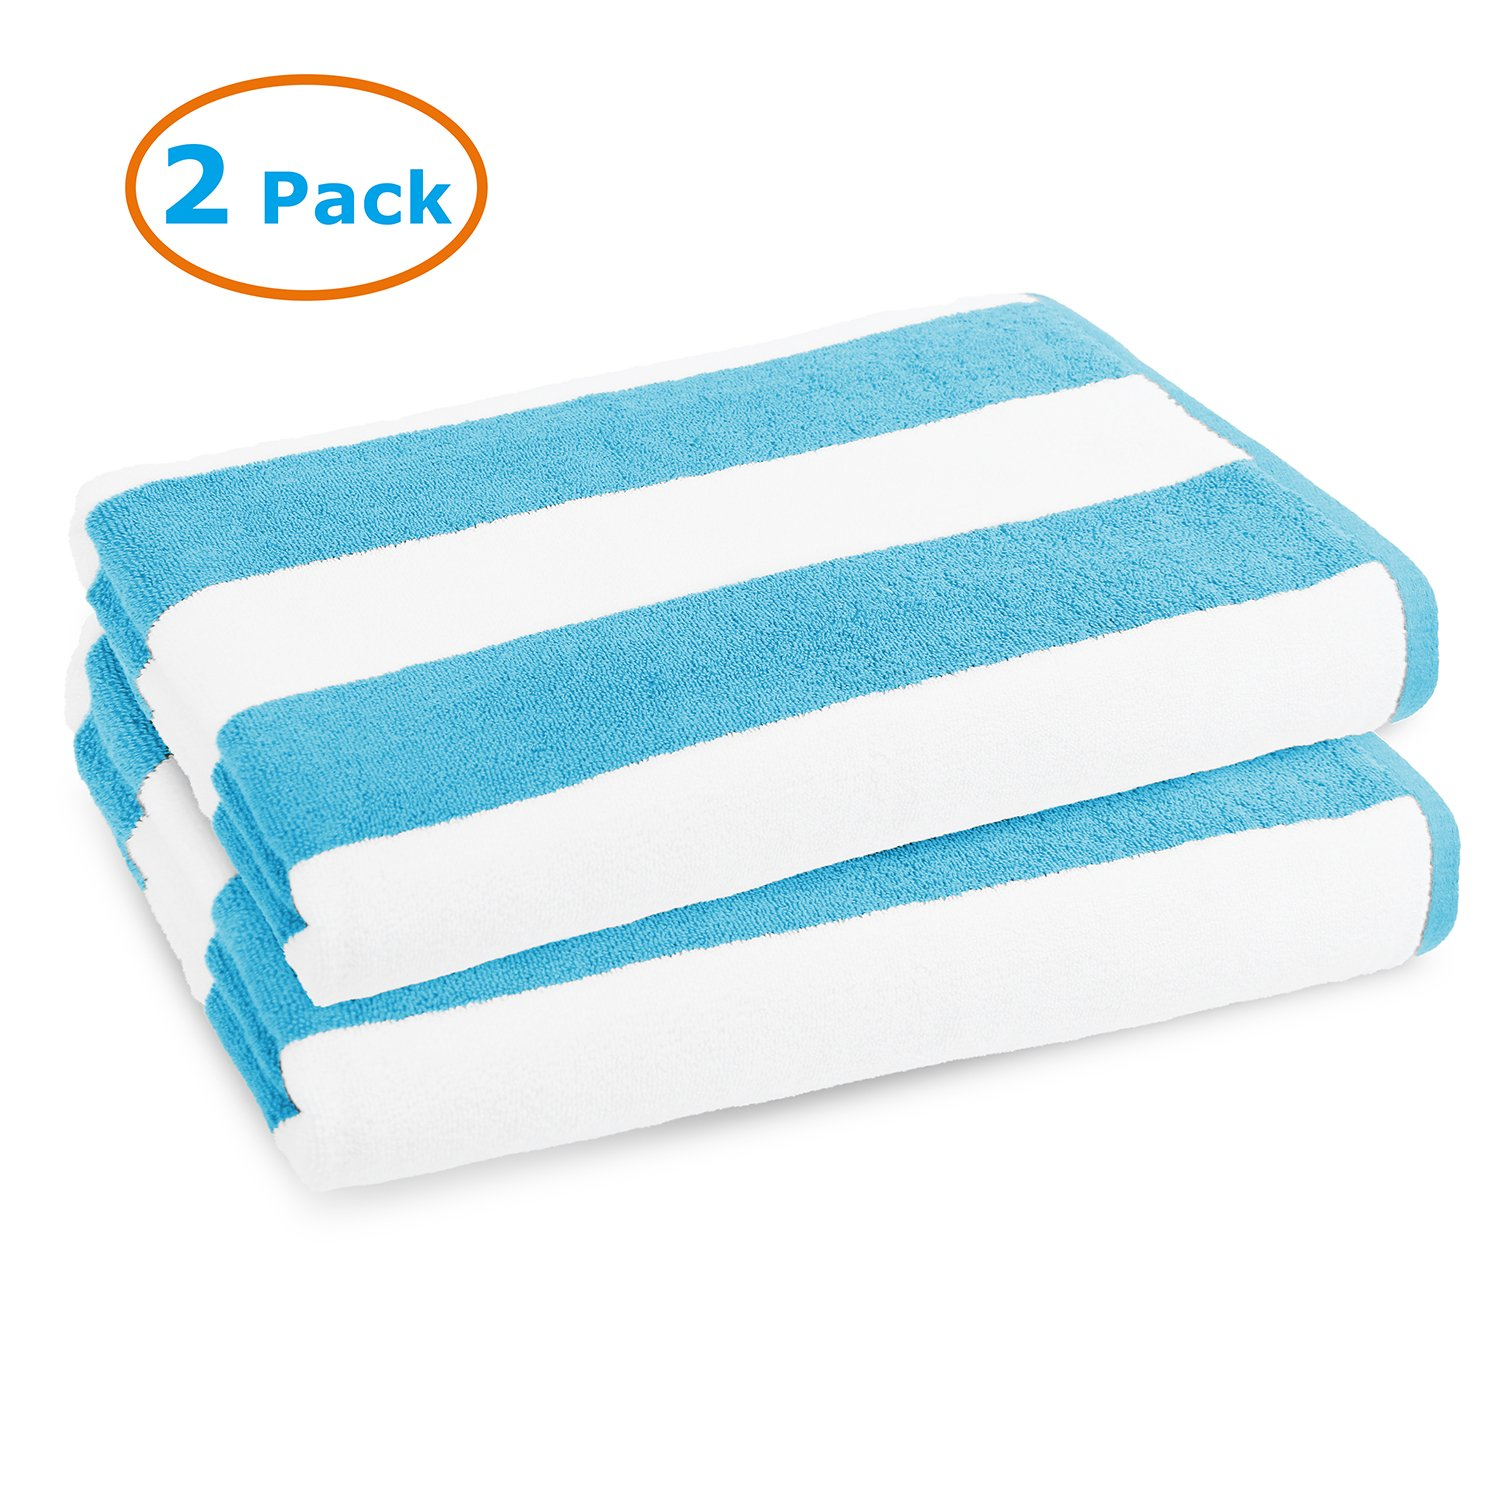 Luxor Linens- Large Beach & Pool Towel  best luxury beach towels